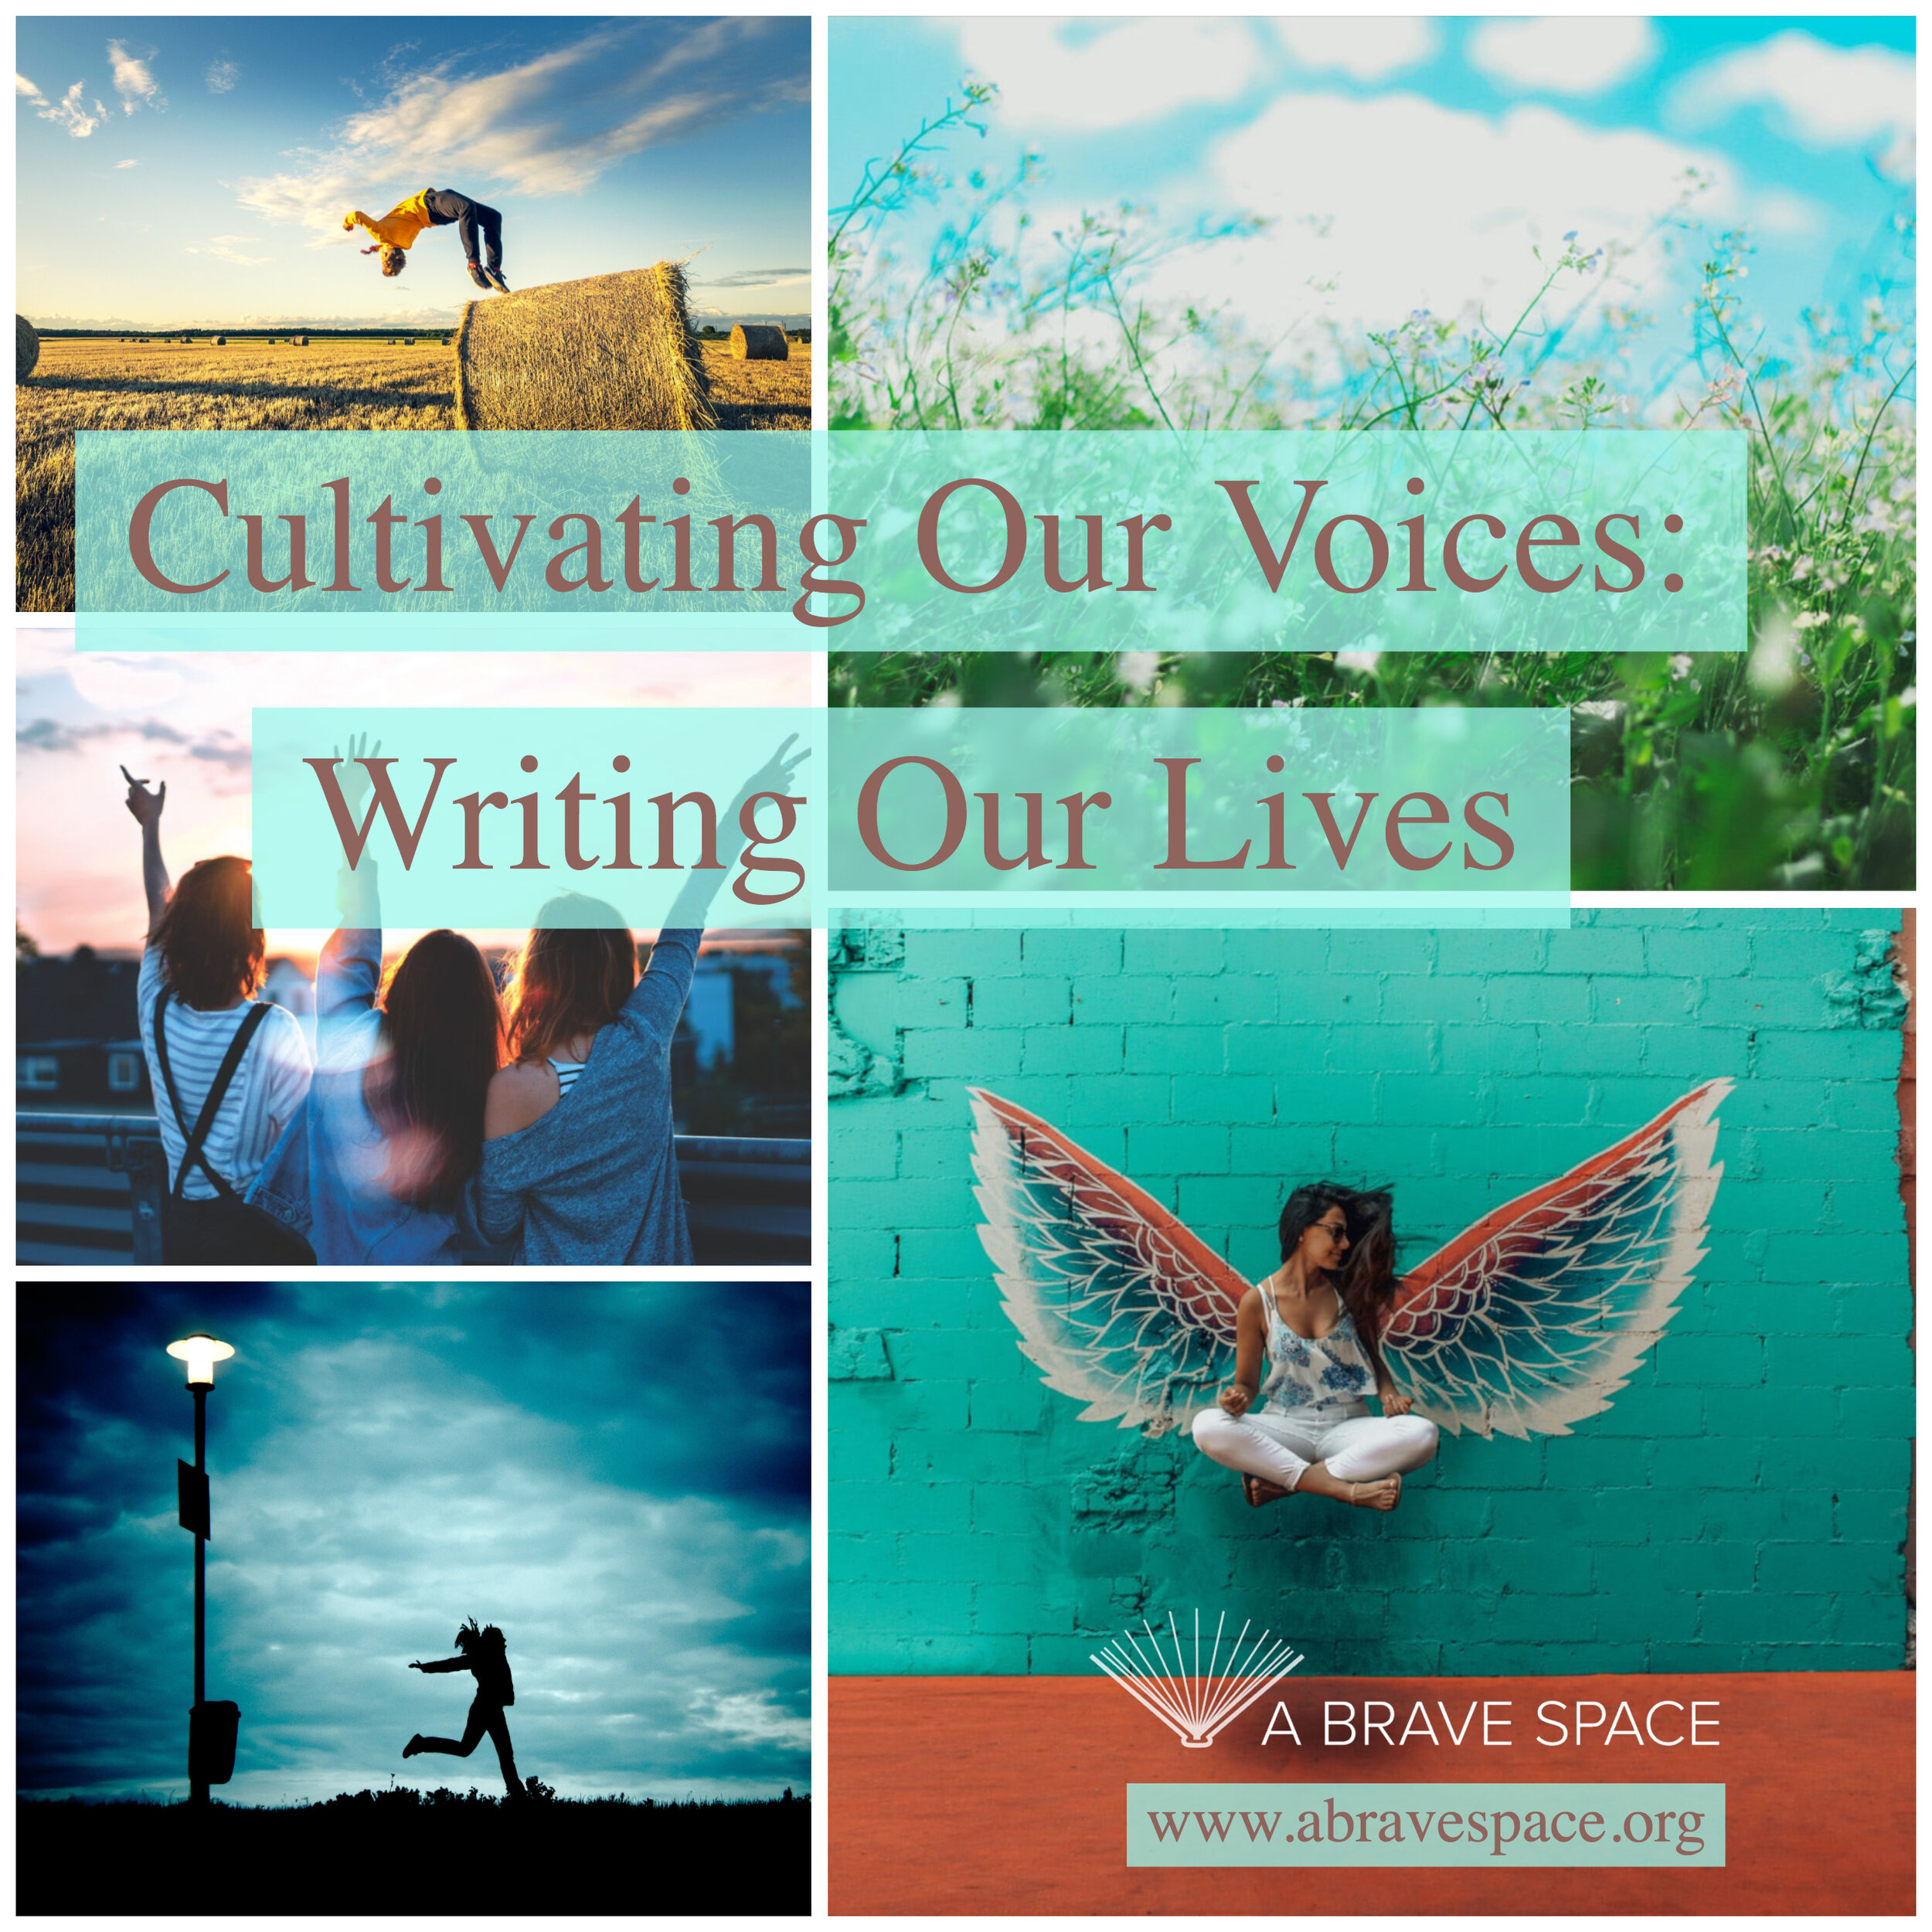 Cultivating Our Voices: Writing Our Lives is a self-paced online class offered by Liz Burke-Cravens